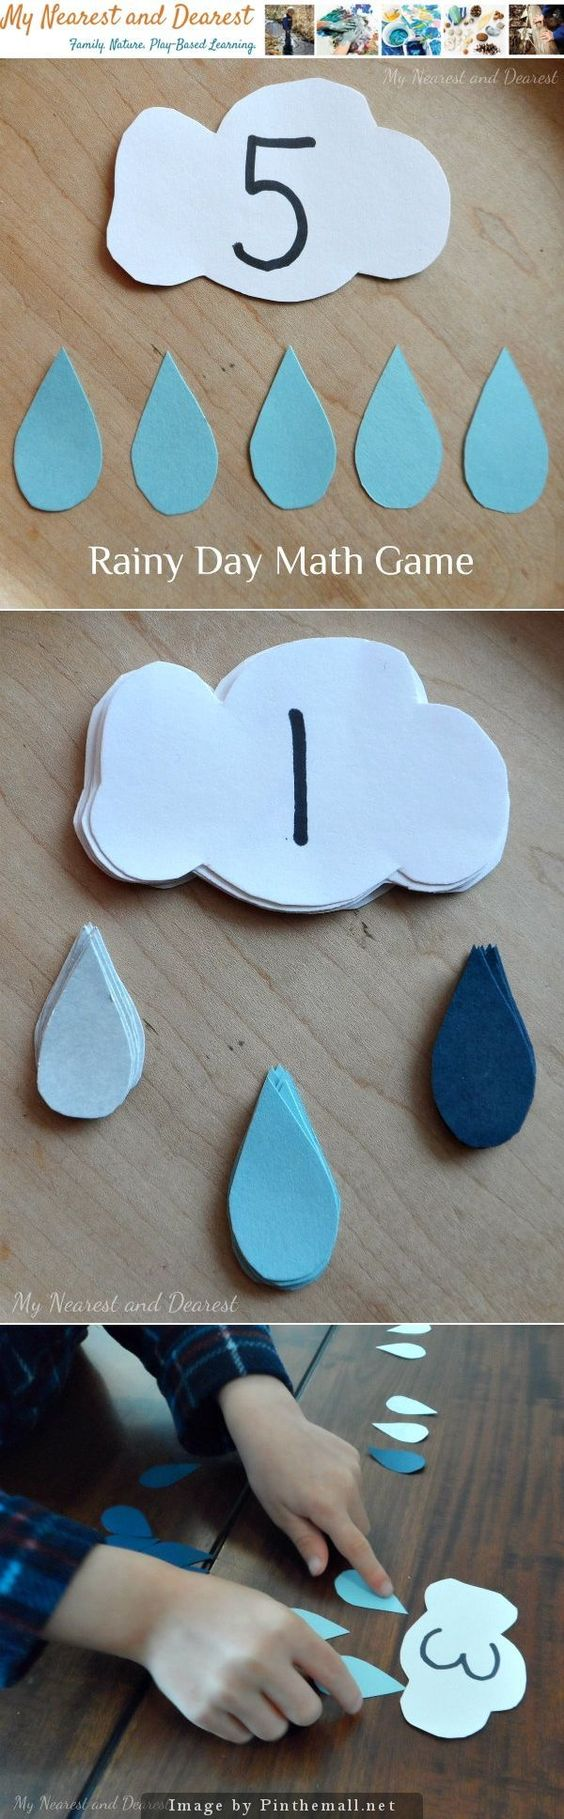 Rainy Day Math Games - This easy-to-make math game is inspired by a rainy day…and perfect for playing on a rainy day! It's a great way for your preschooler to practice number recognition, one-to-one correspondence, and patterning.